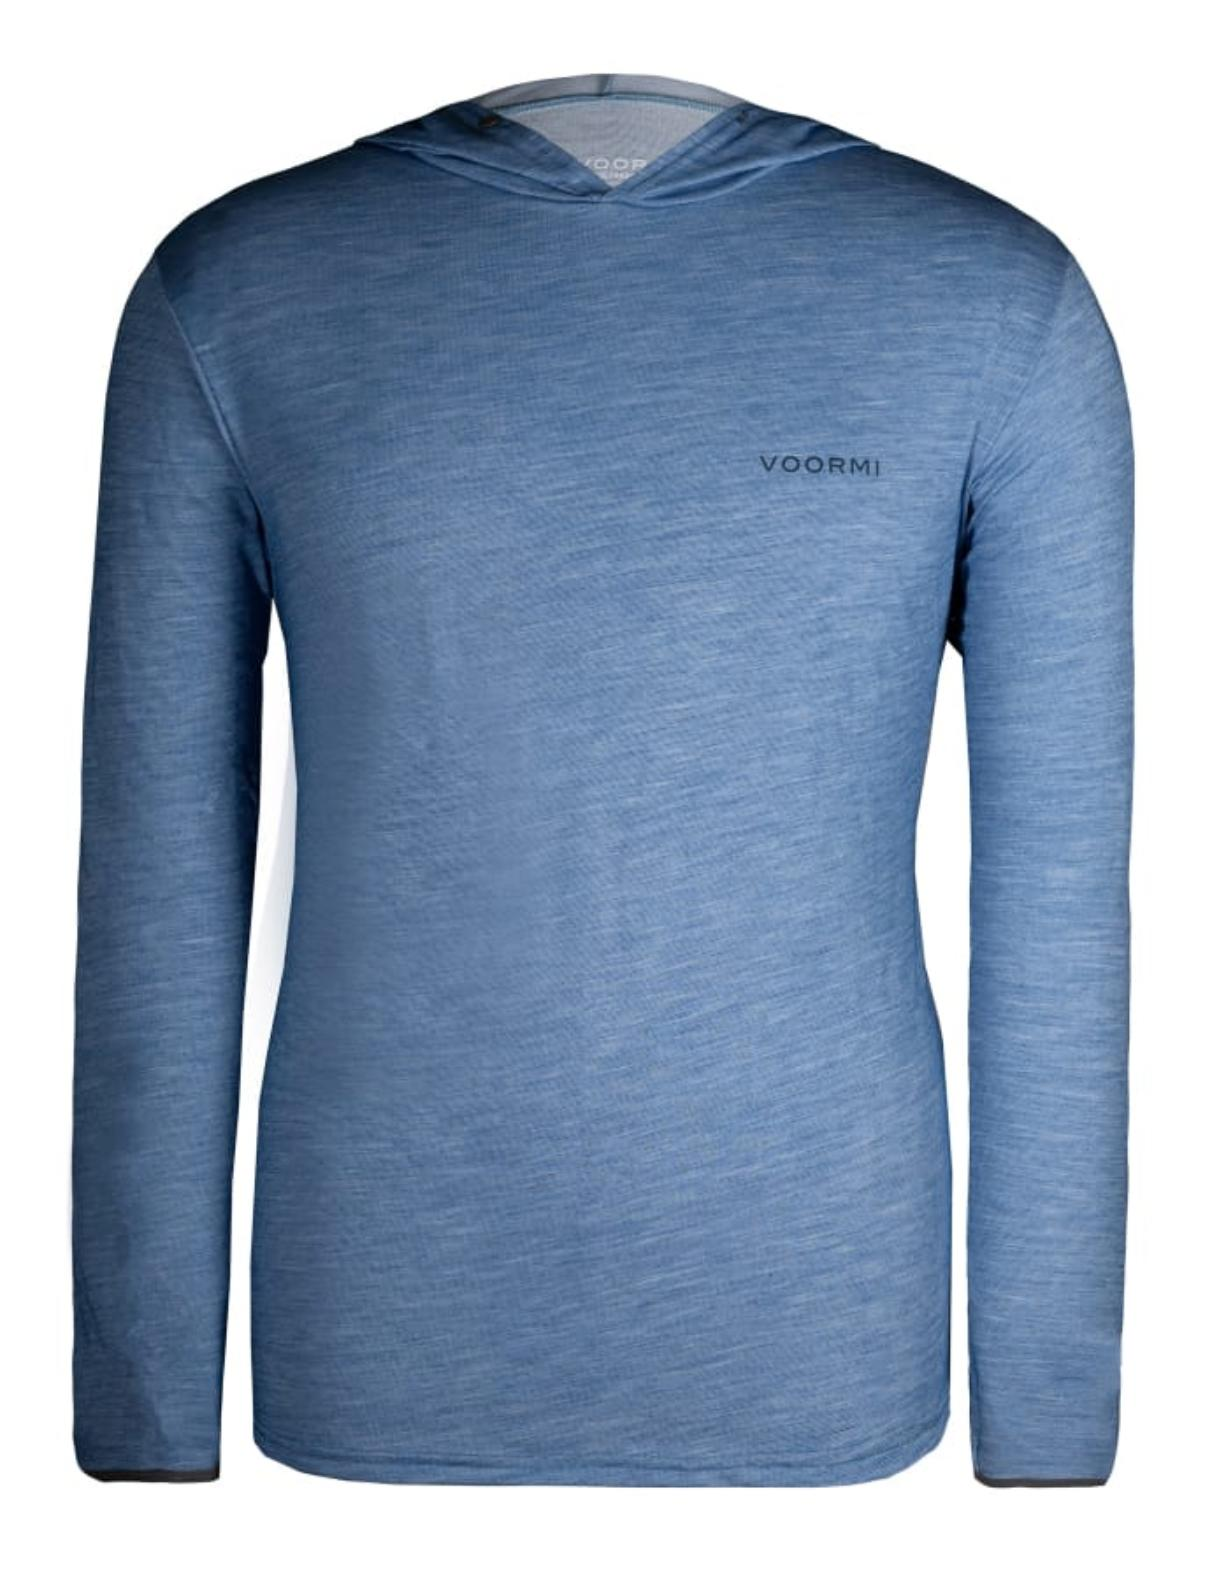 The River Run Hoodie from Voormi specializes in lightweight outdoor apparel made with wool blends.